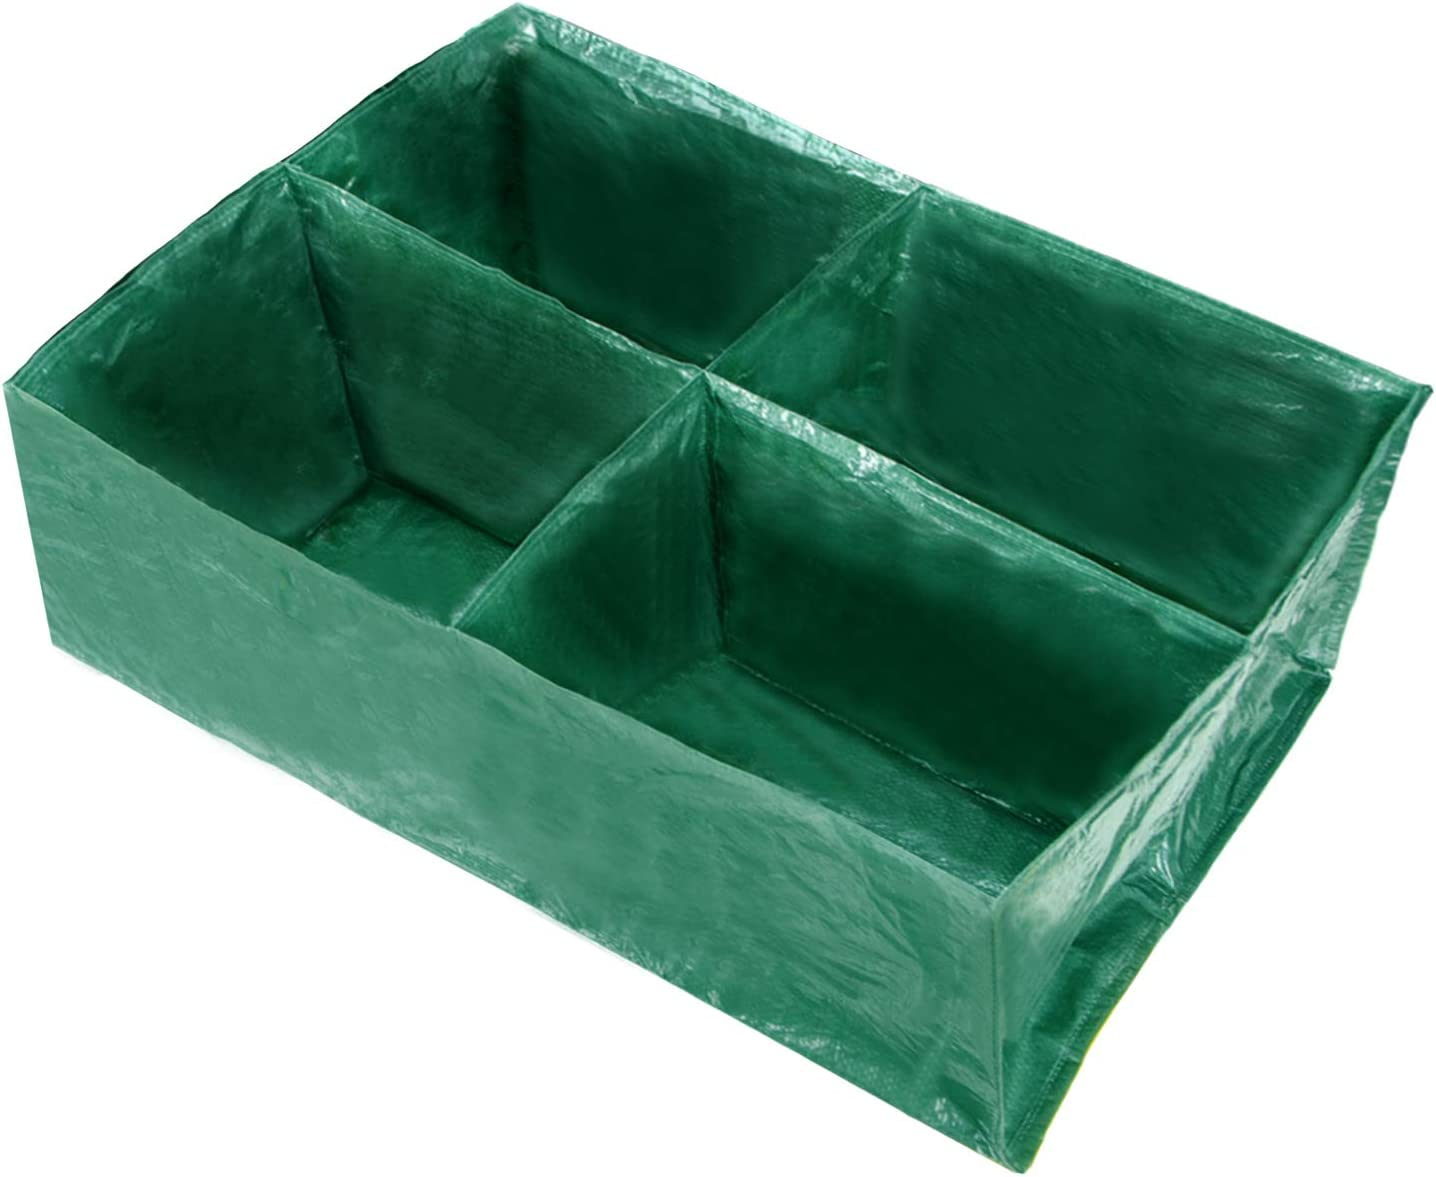 DYC 4 Divided Raised Garden Planting Bed-Divided Grids Large Gardening Bag,Rectangle Breathable Plant Container,Grow Bag Planter Pot Box for Herb Flower Vegetable